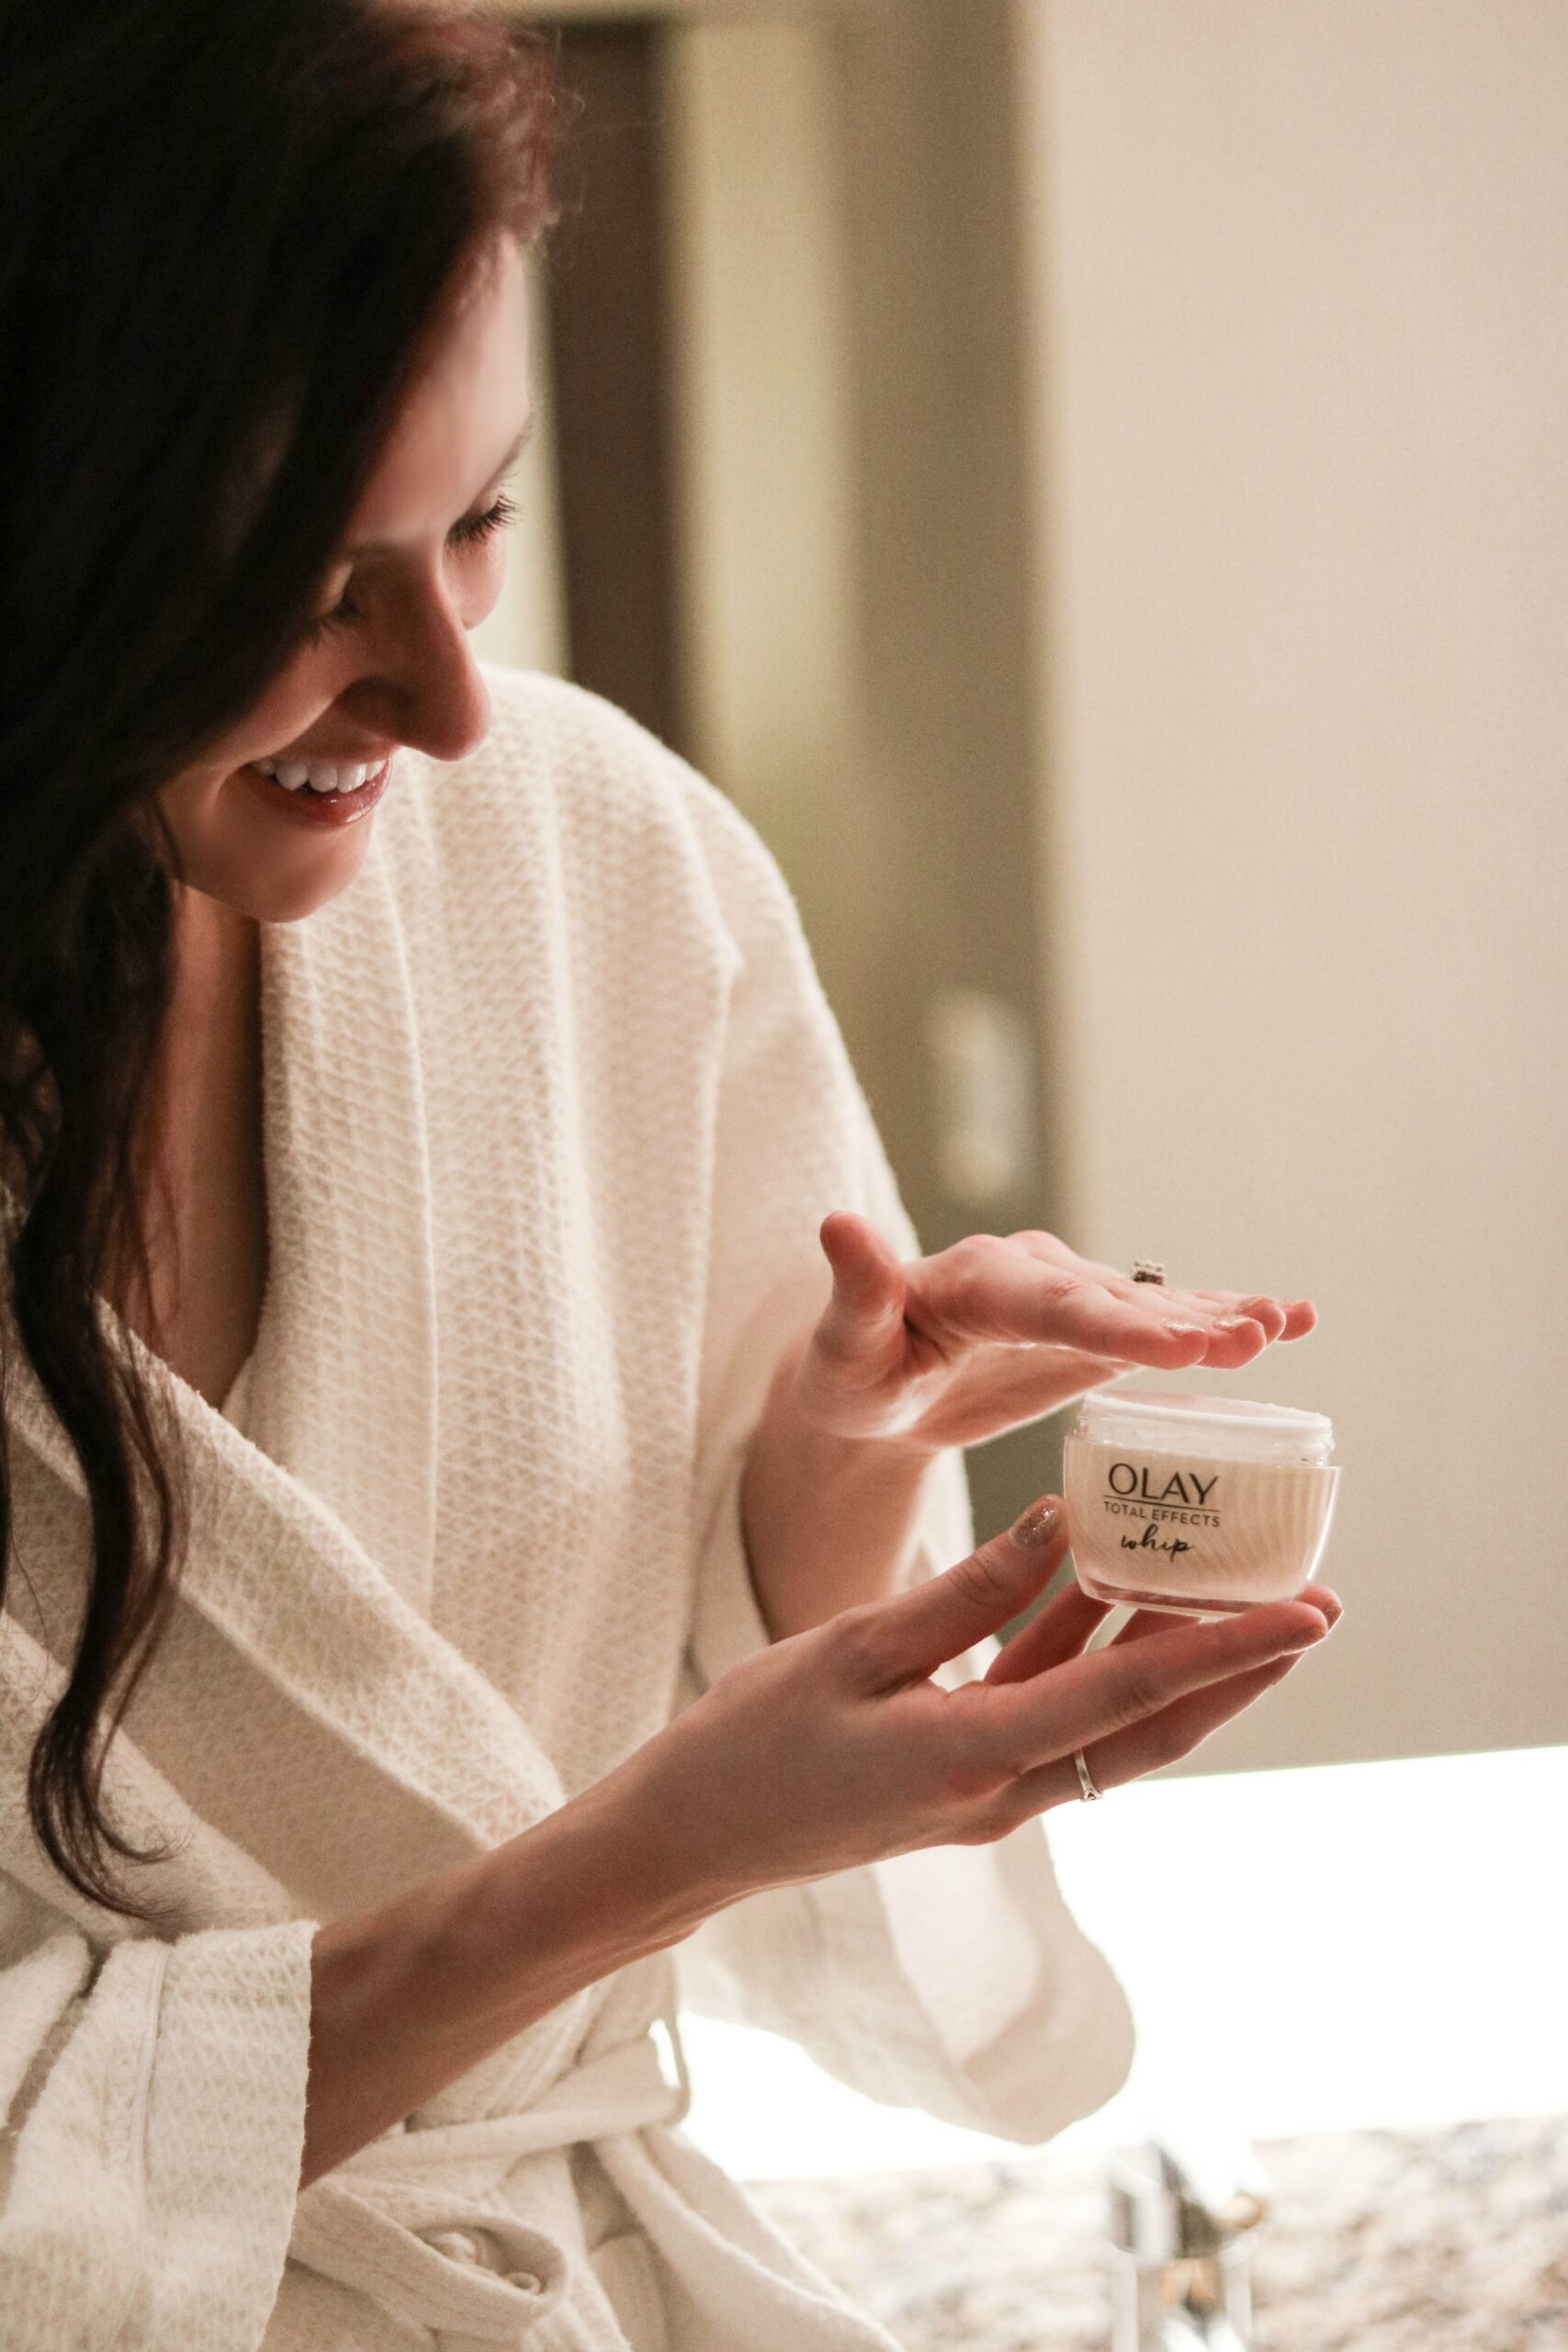 Olay Whip – The 3-Step Process to Save your Skin this Winter